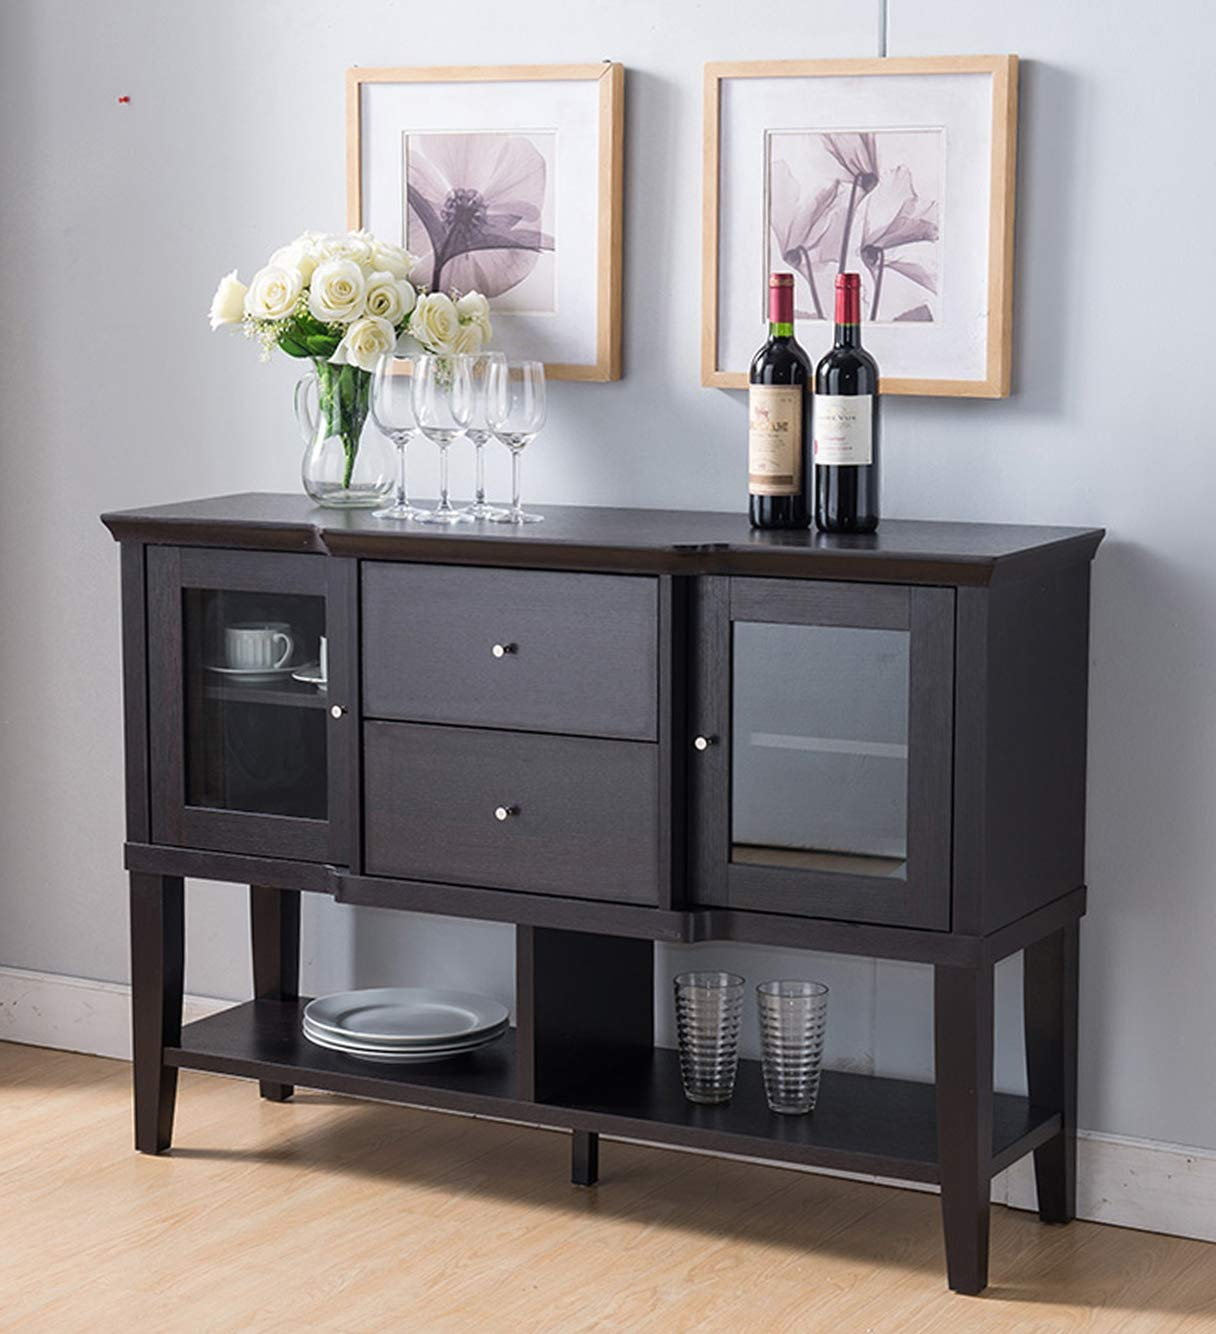 Smart Home 161641 Dining Room Sideboard Buffet in Red Cocoa